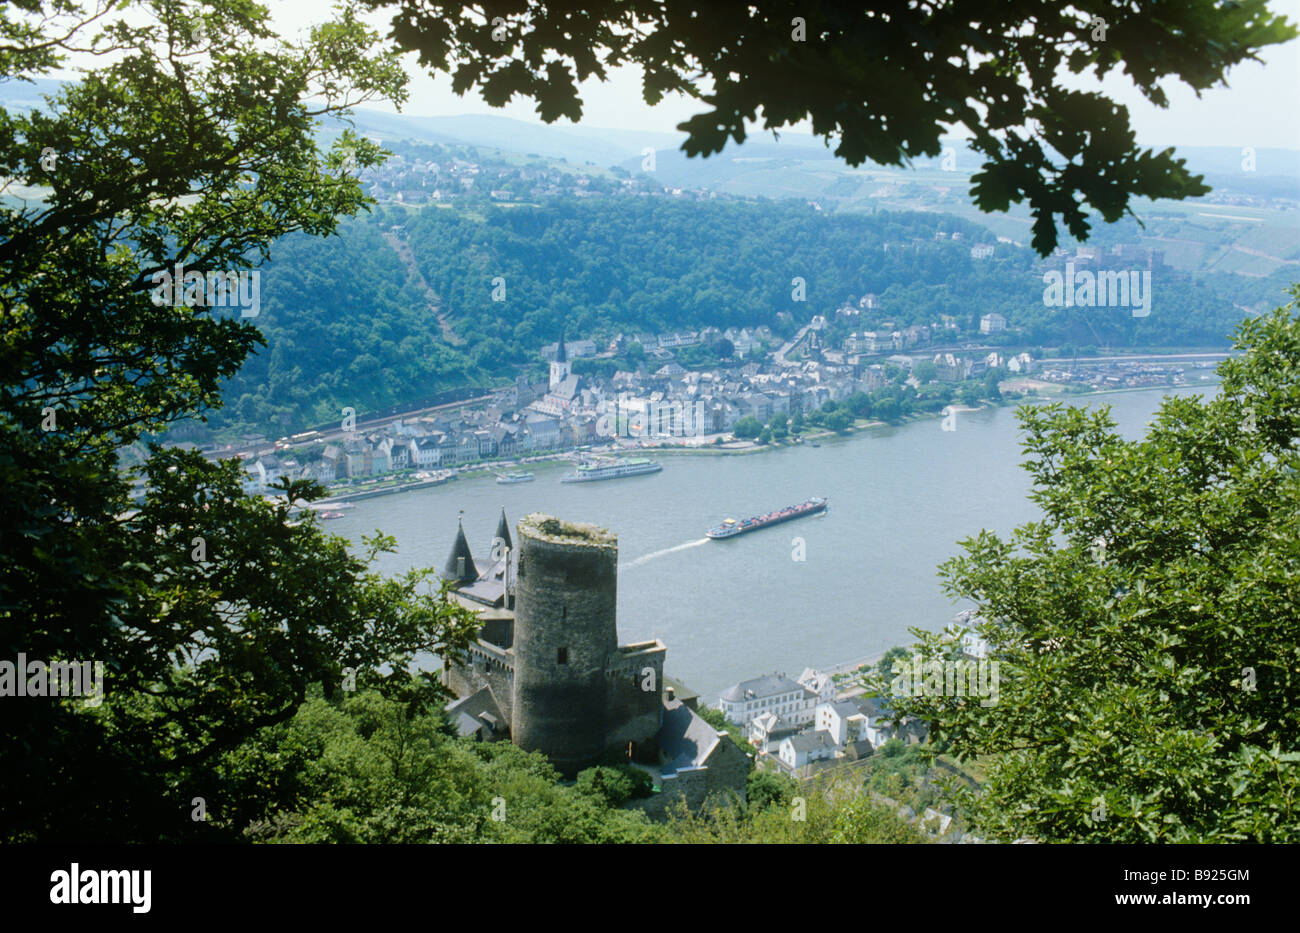 Burg Katz with St Goar beyond on the Rhine, the castle of the cat, not far away is Burg Maus -The castle of the - Stock Image